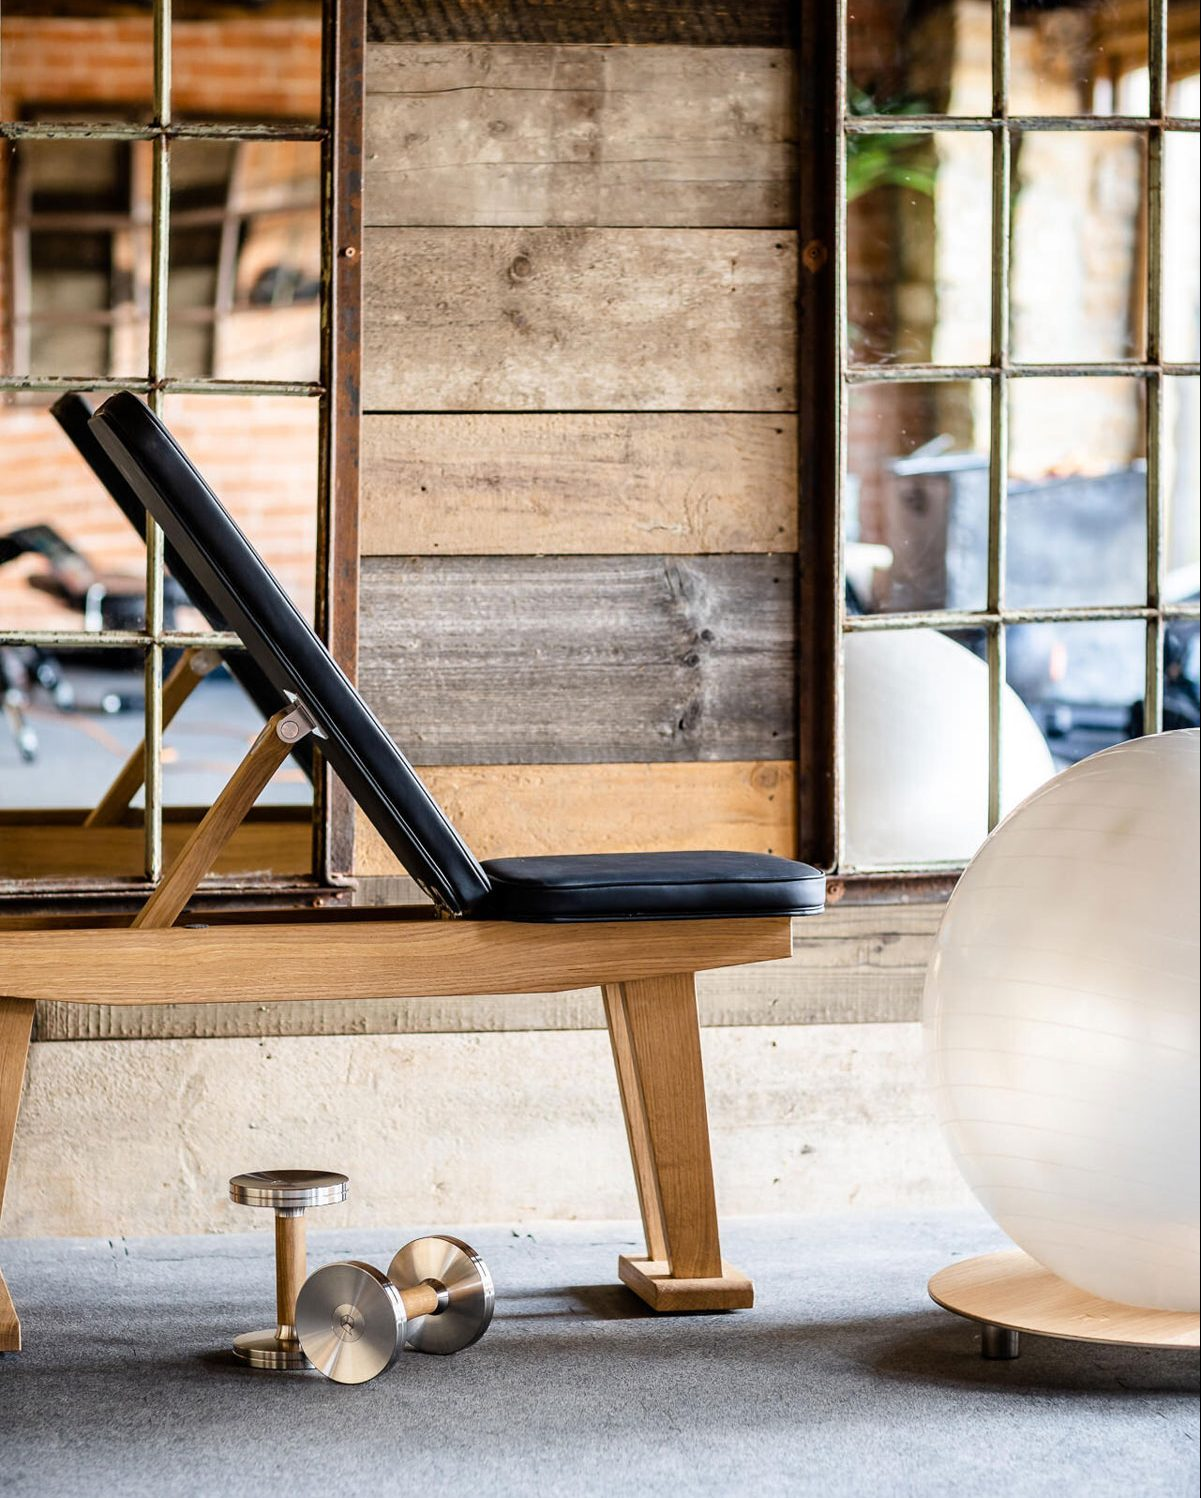 sustainable gym equipment, Bespoke, sustainable & luxurious: Paragon Studio gym equipment offers unlimited design choices